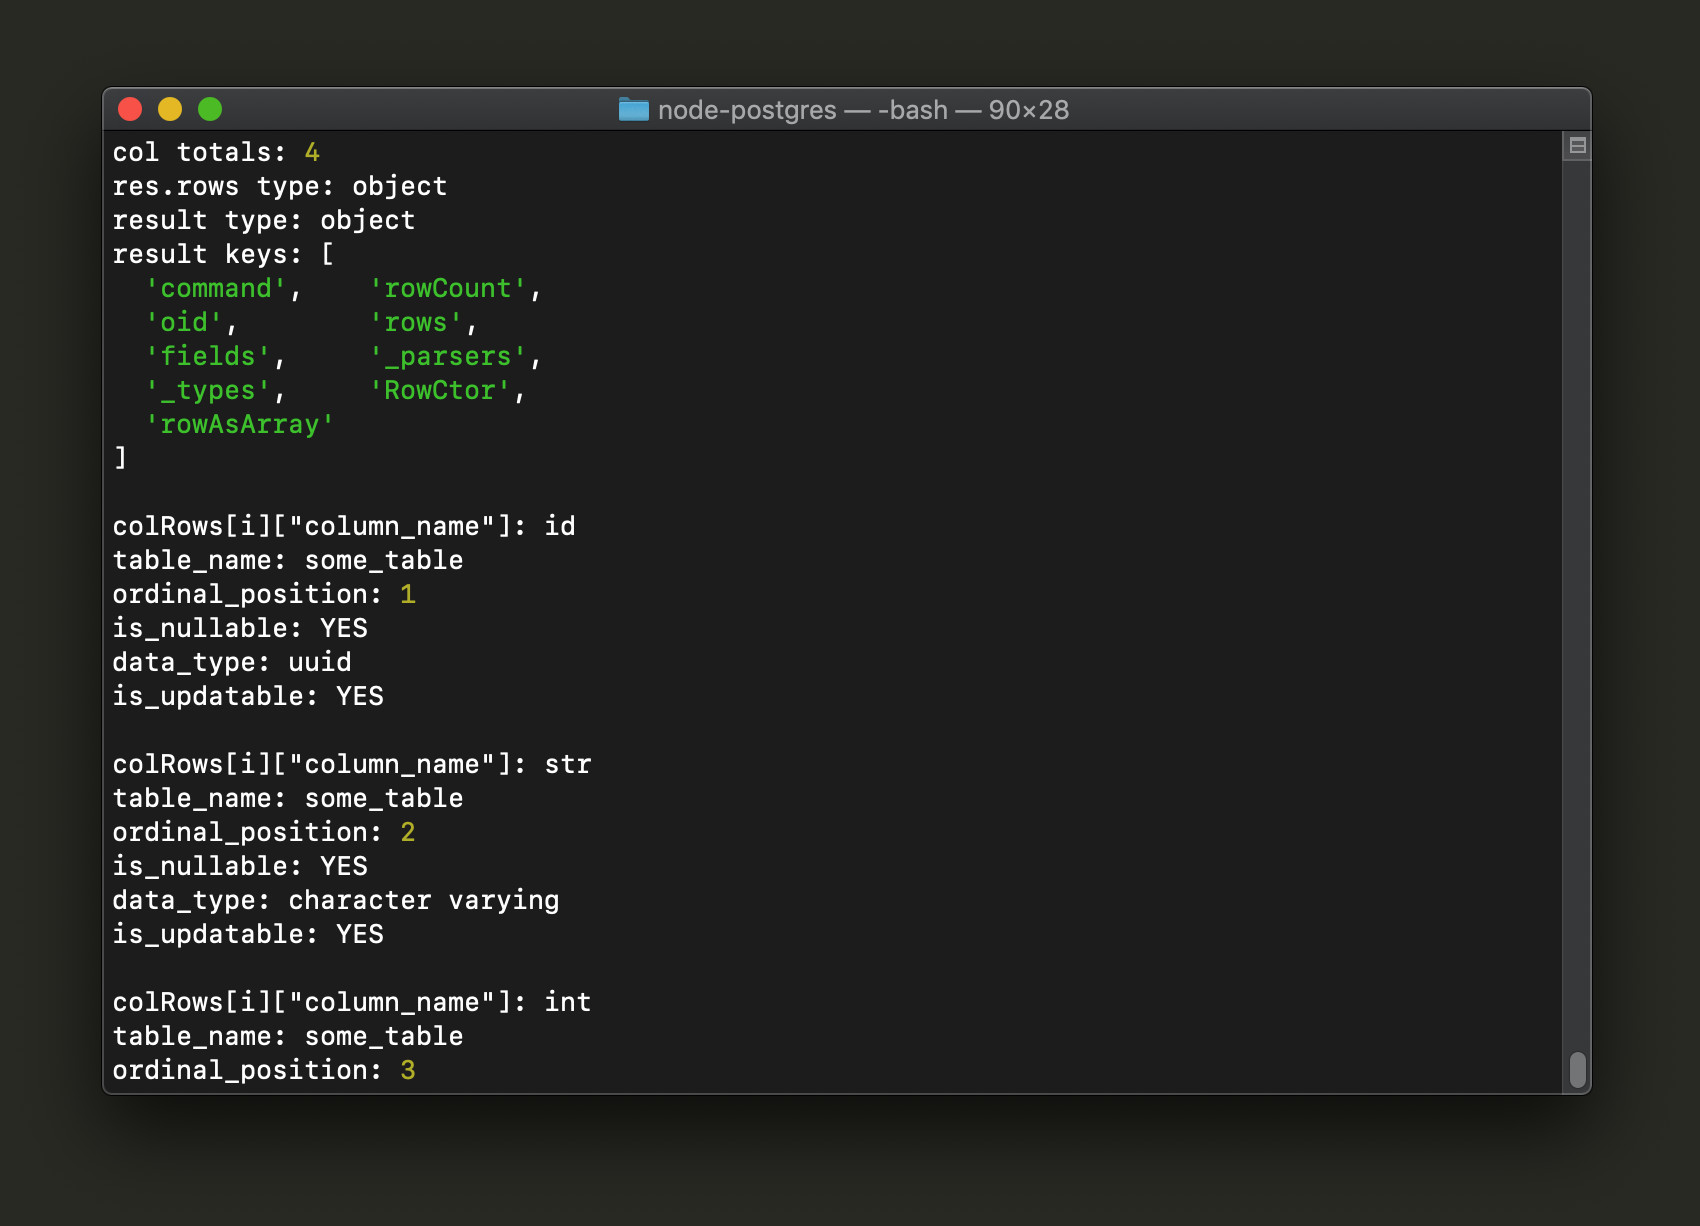 Screenshot of Node PostgreSQL column names in terminal